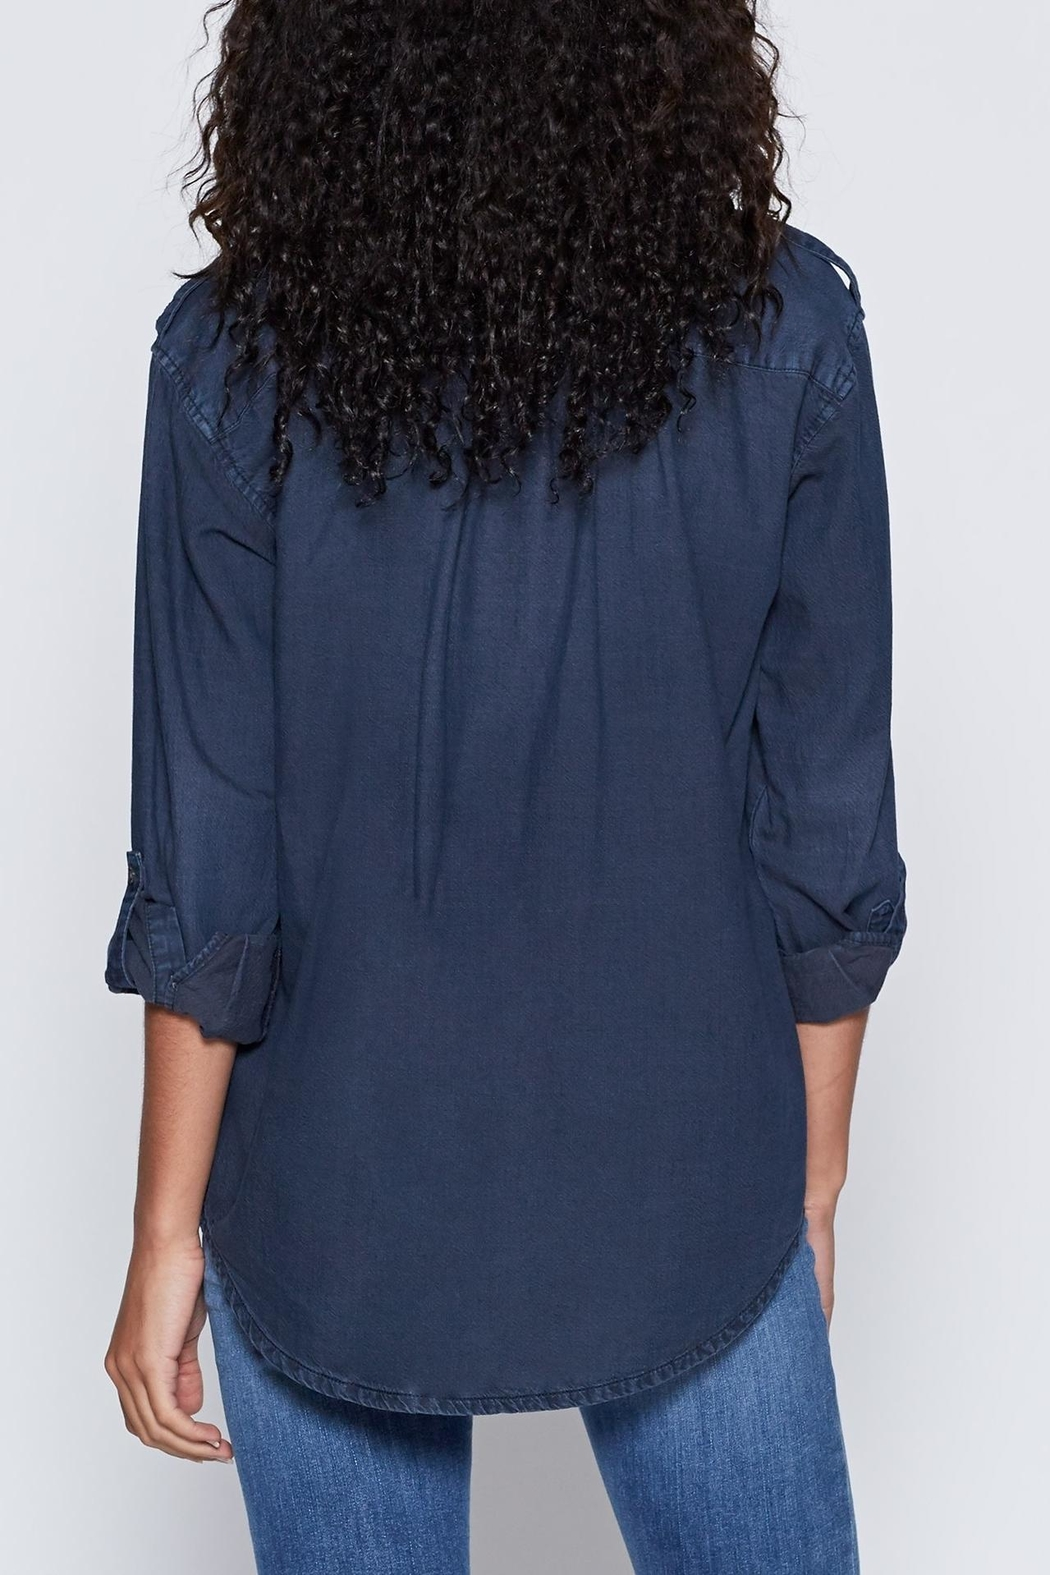 Joie Lidelle Chambray Top - Side Cropped Image